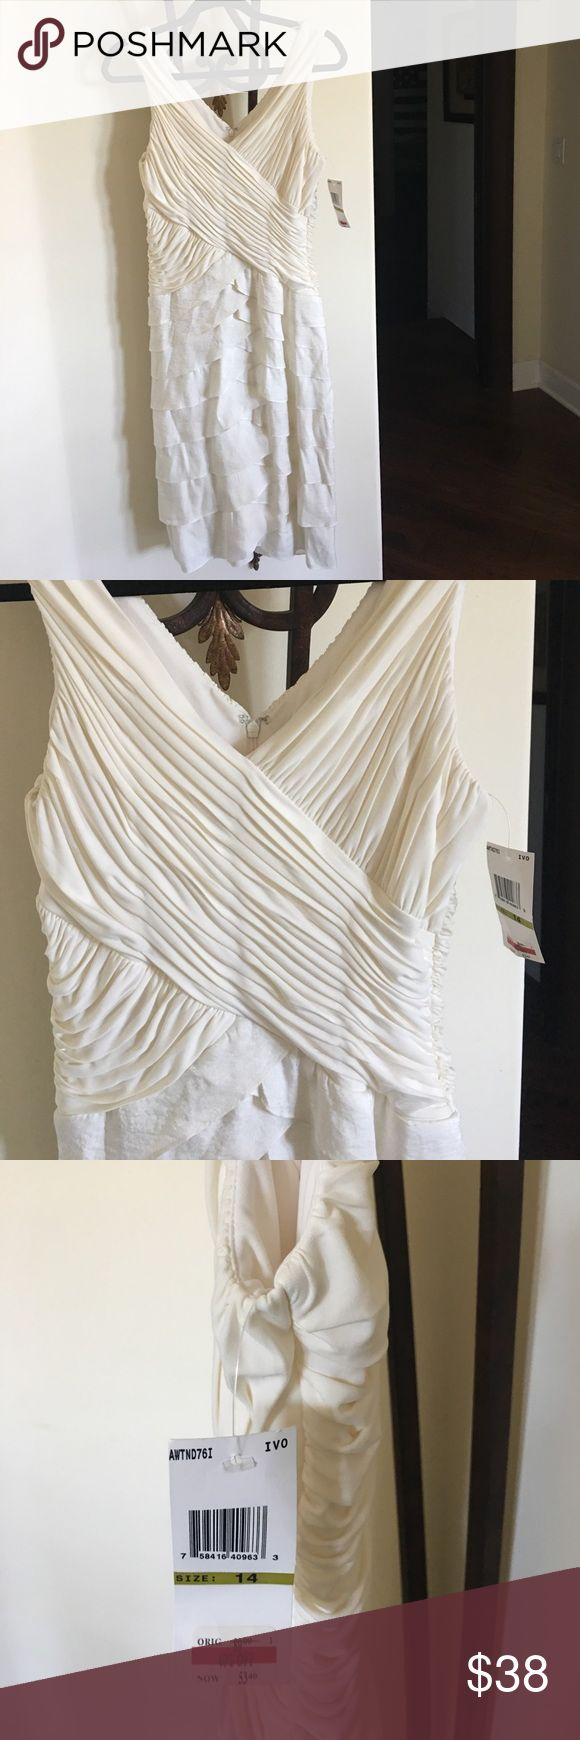 Cream cocktail dress. Very complimentary. Size 14 but wears more like a 12. Cream color fully lined. Zips in back. Sangria Dresses Midi